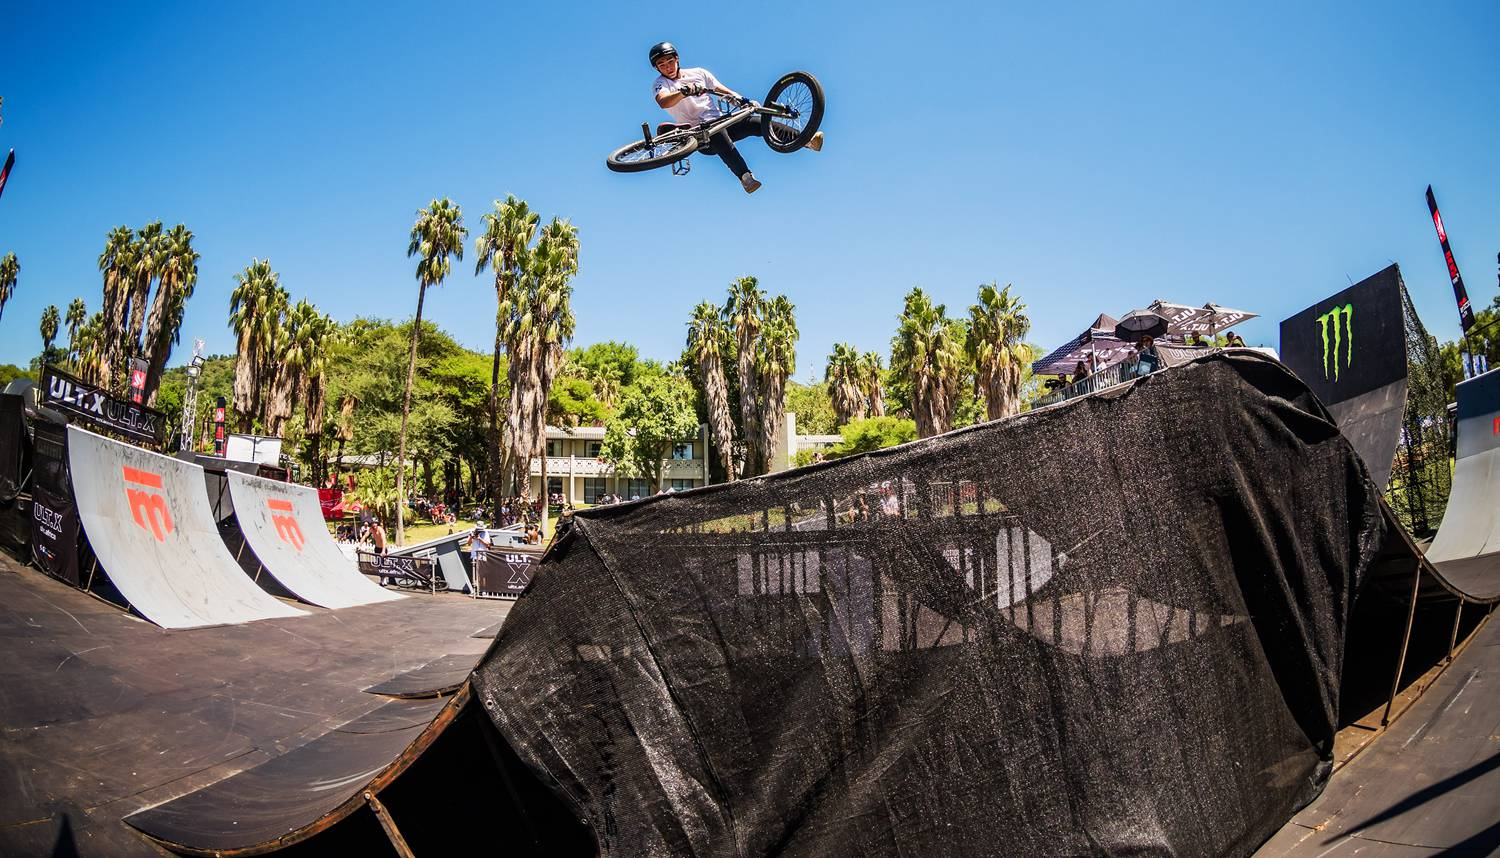 Ultimate X BMX Gallery BMX Direct